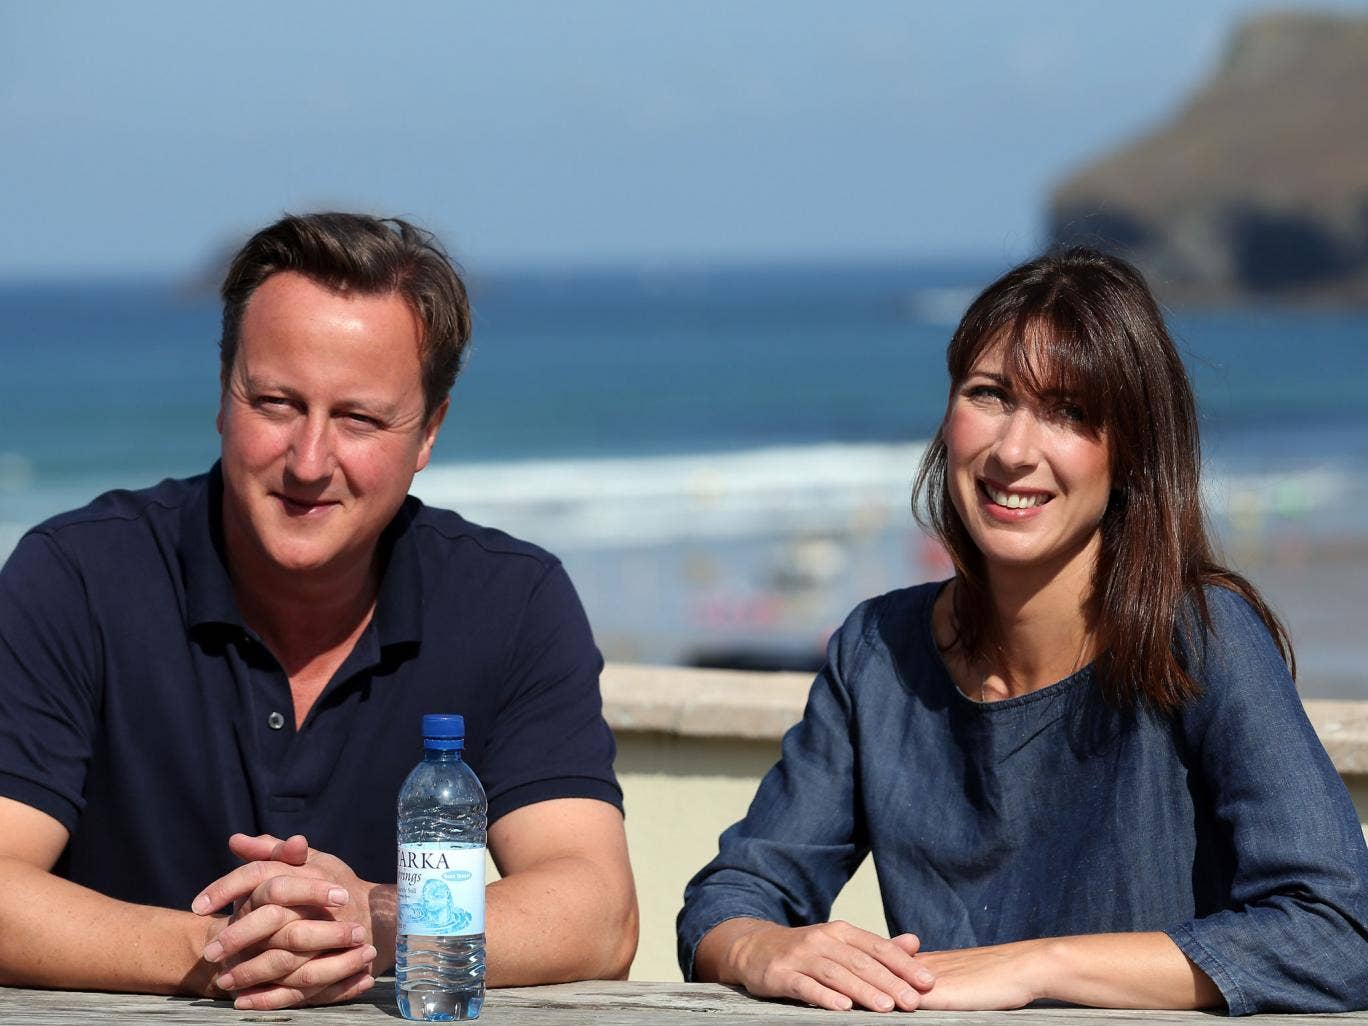 No 10 plays down reports this summer that Samantha Cameron was instrumental in persuading her husband to take military action against the Assad regime in Syria